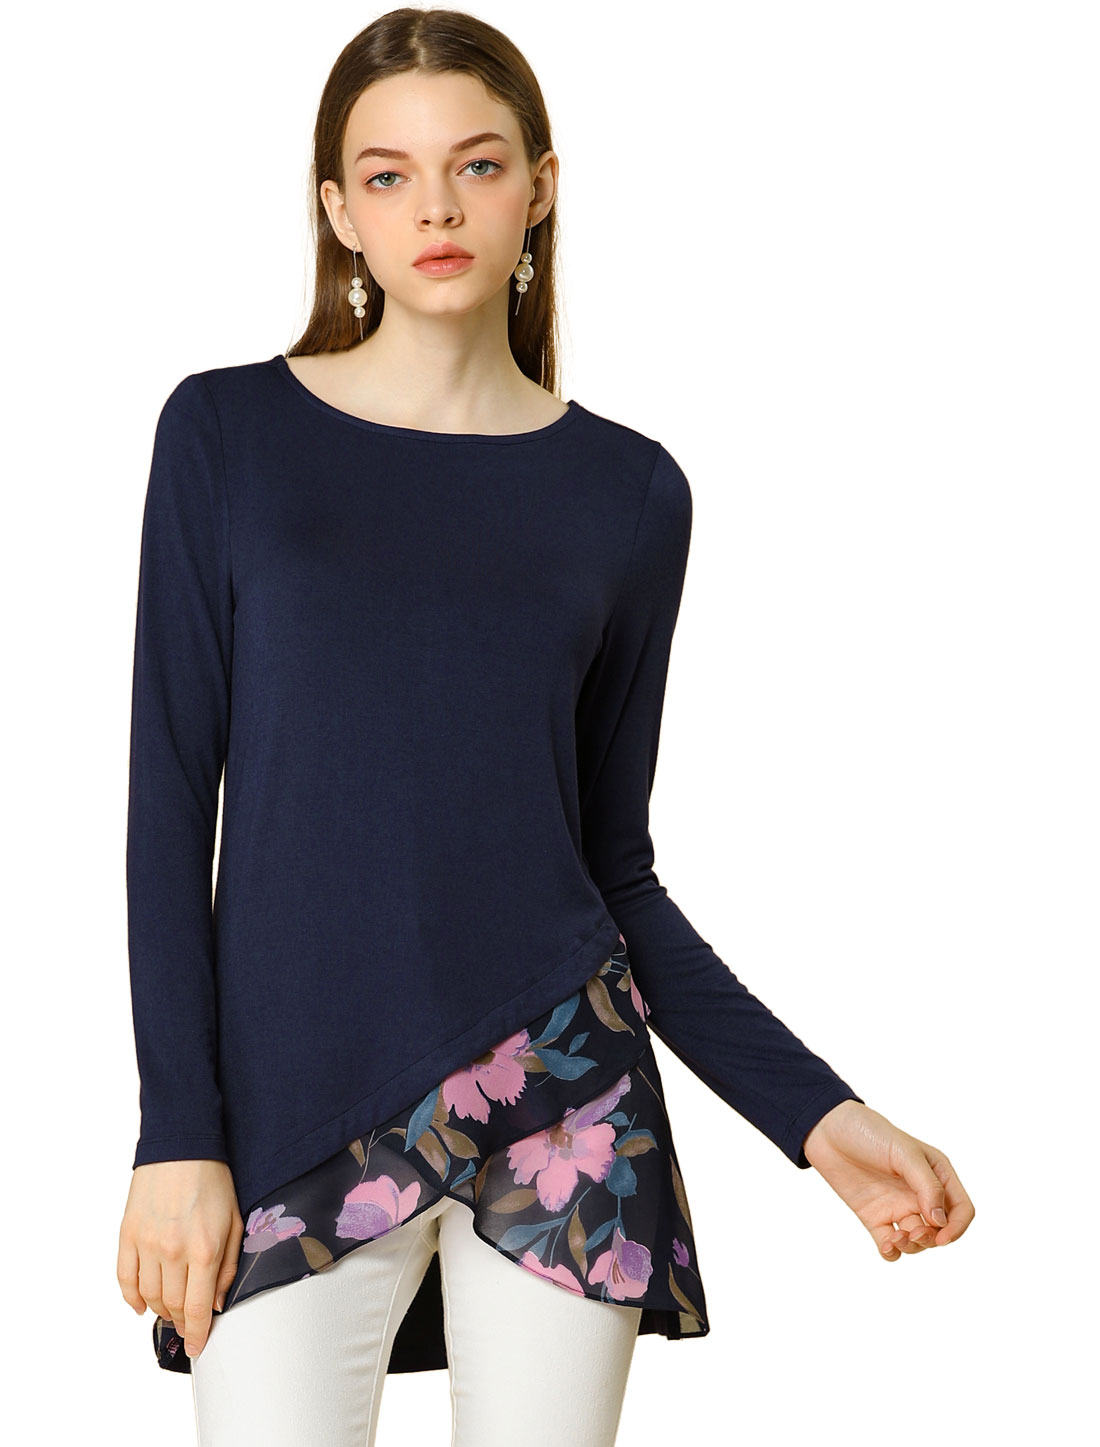 Allegra K Women's Floral Long Sleeve Boat Neck Asymmetrical Hem Top Navy L